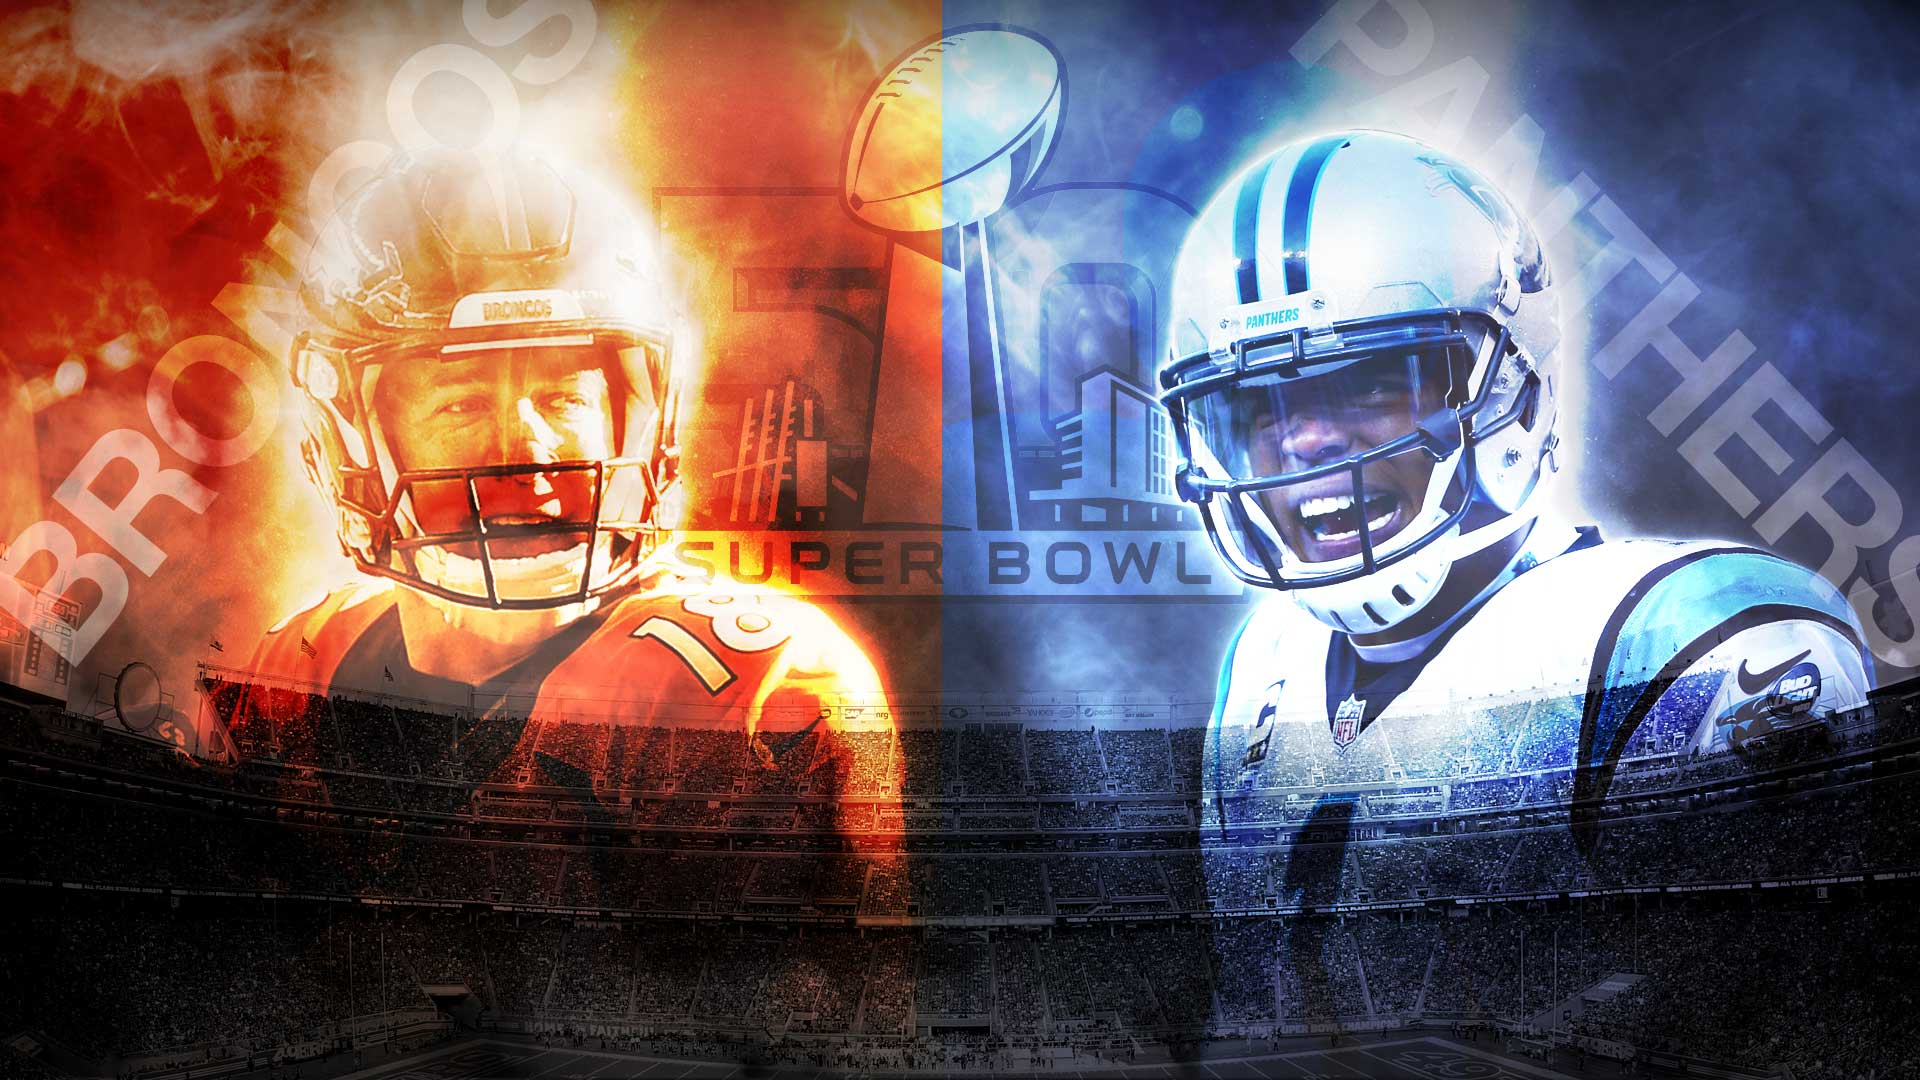 Super Bowl 50 Peyton vs Cam